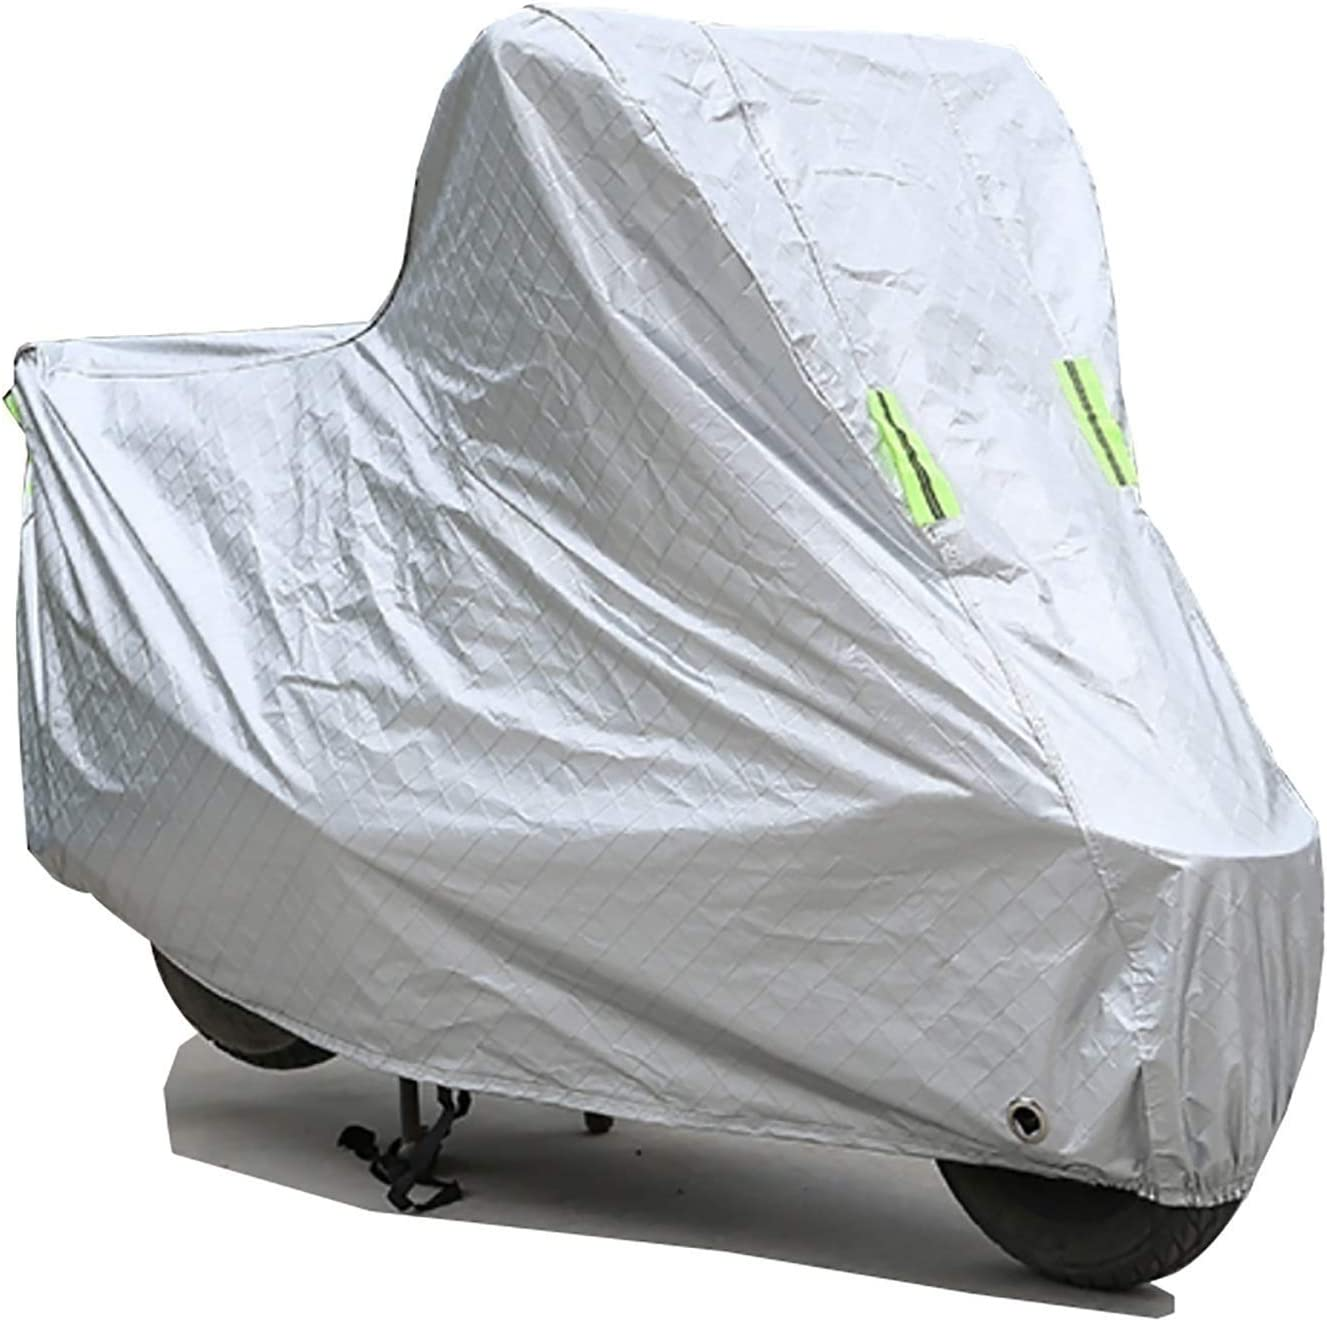 HEQCG Motorcycle Cover Compatible with F Covers Alternative Detroit Mall dealer BMW 7